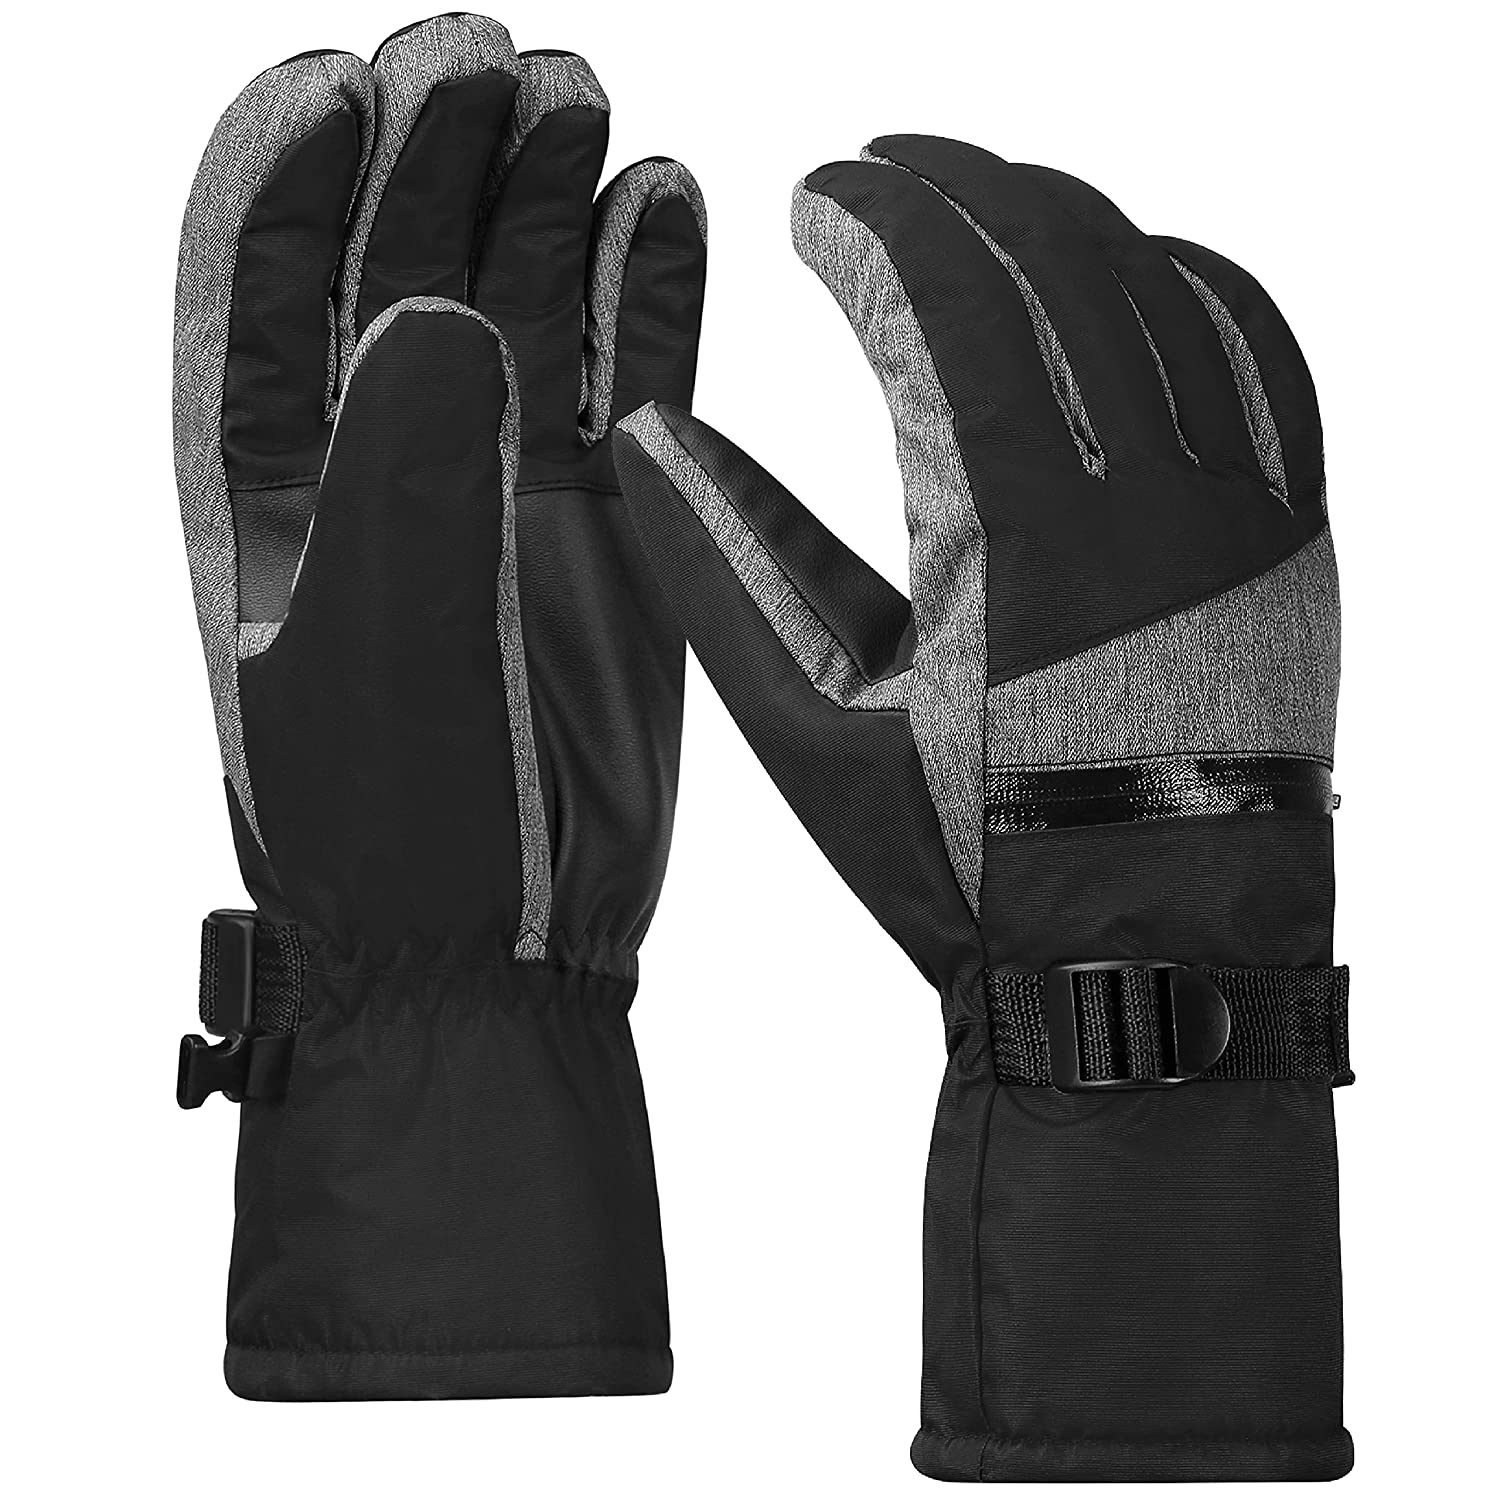 Terra Hiker Waterproof Microfiber Winter Ski Gloves 3M Thinsulate Insulation for Men TH0123